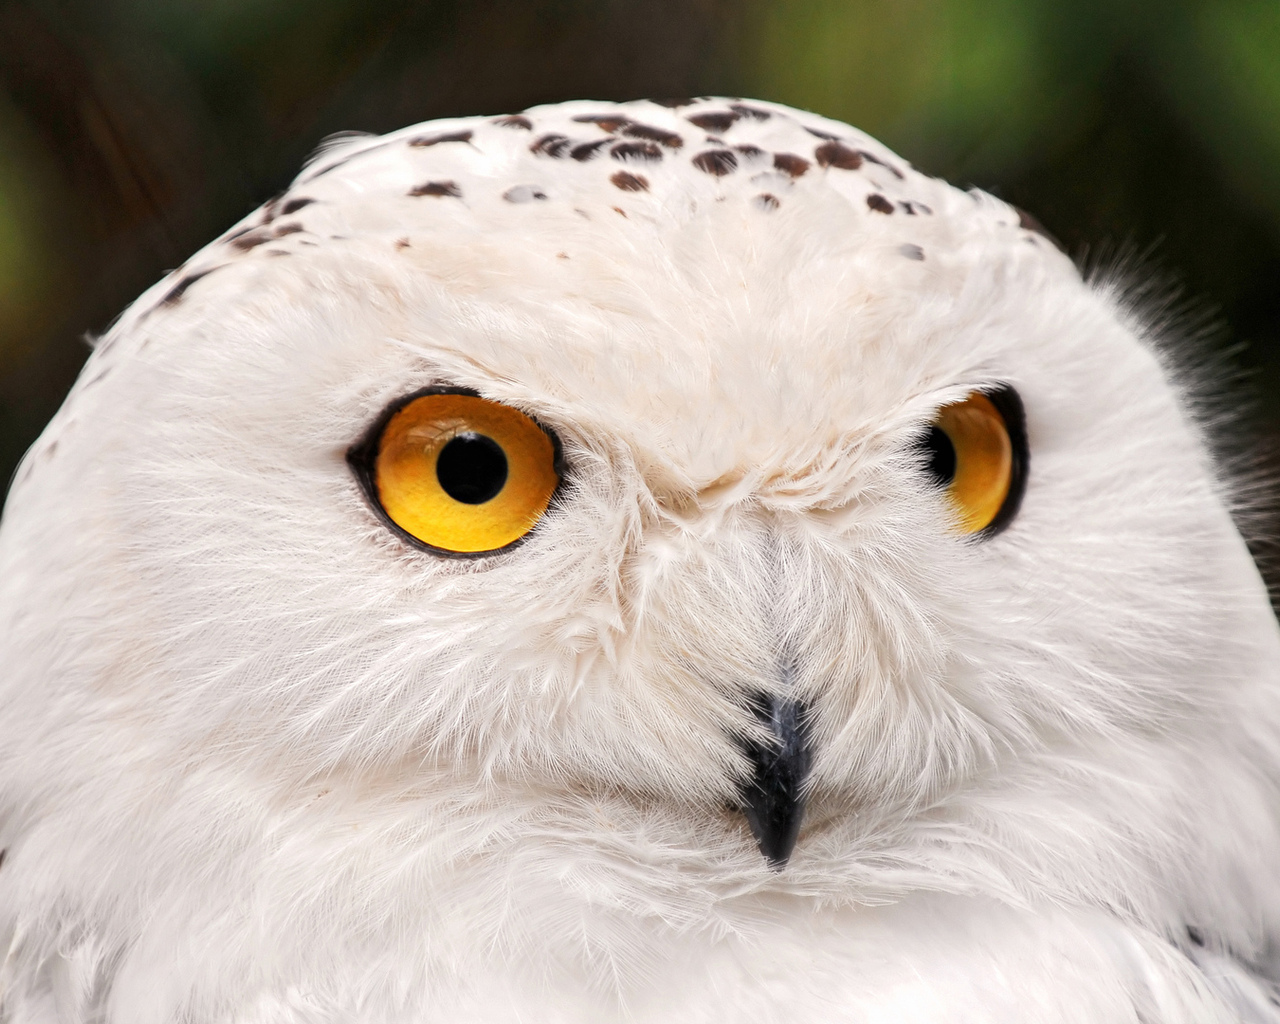 white owl muslim Top-funny-jokescom is a site of entertainment here you will find different jokes, riddles, pick up lines and insults we have divided and organized all the jokes, riddles, insults and pick up lines into different categories, to make is easier for you to find your favorites pieces.